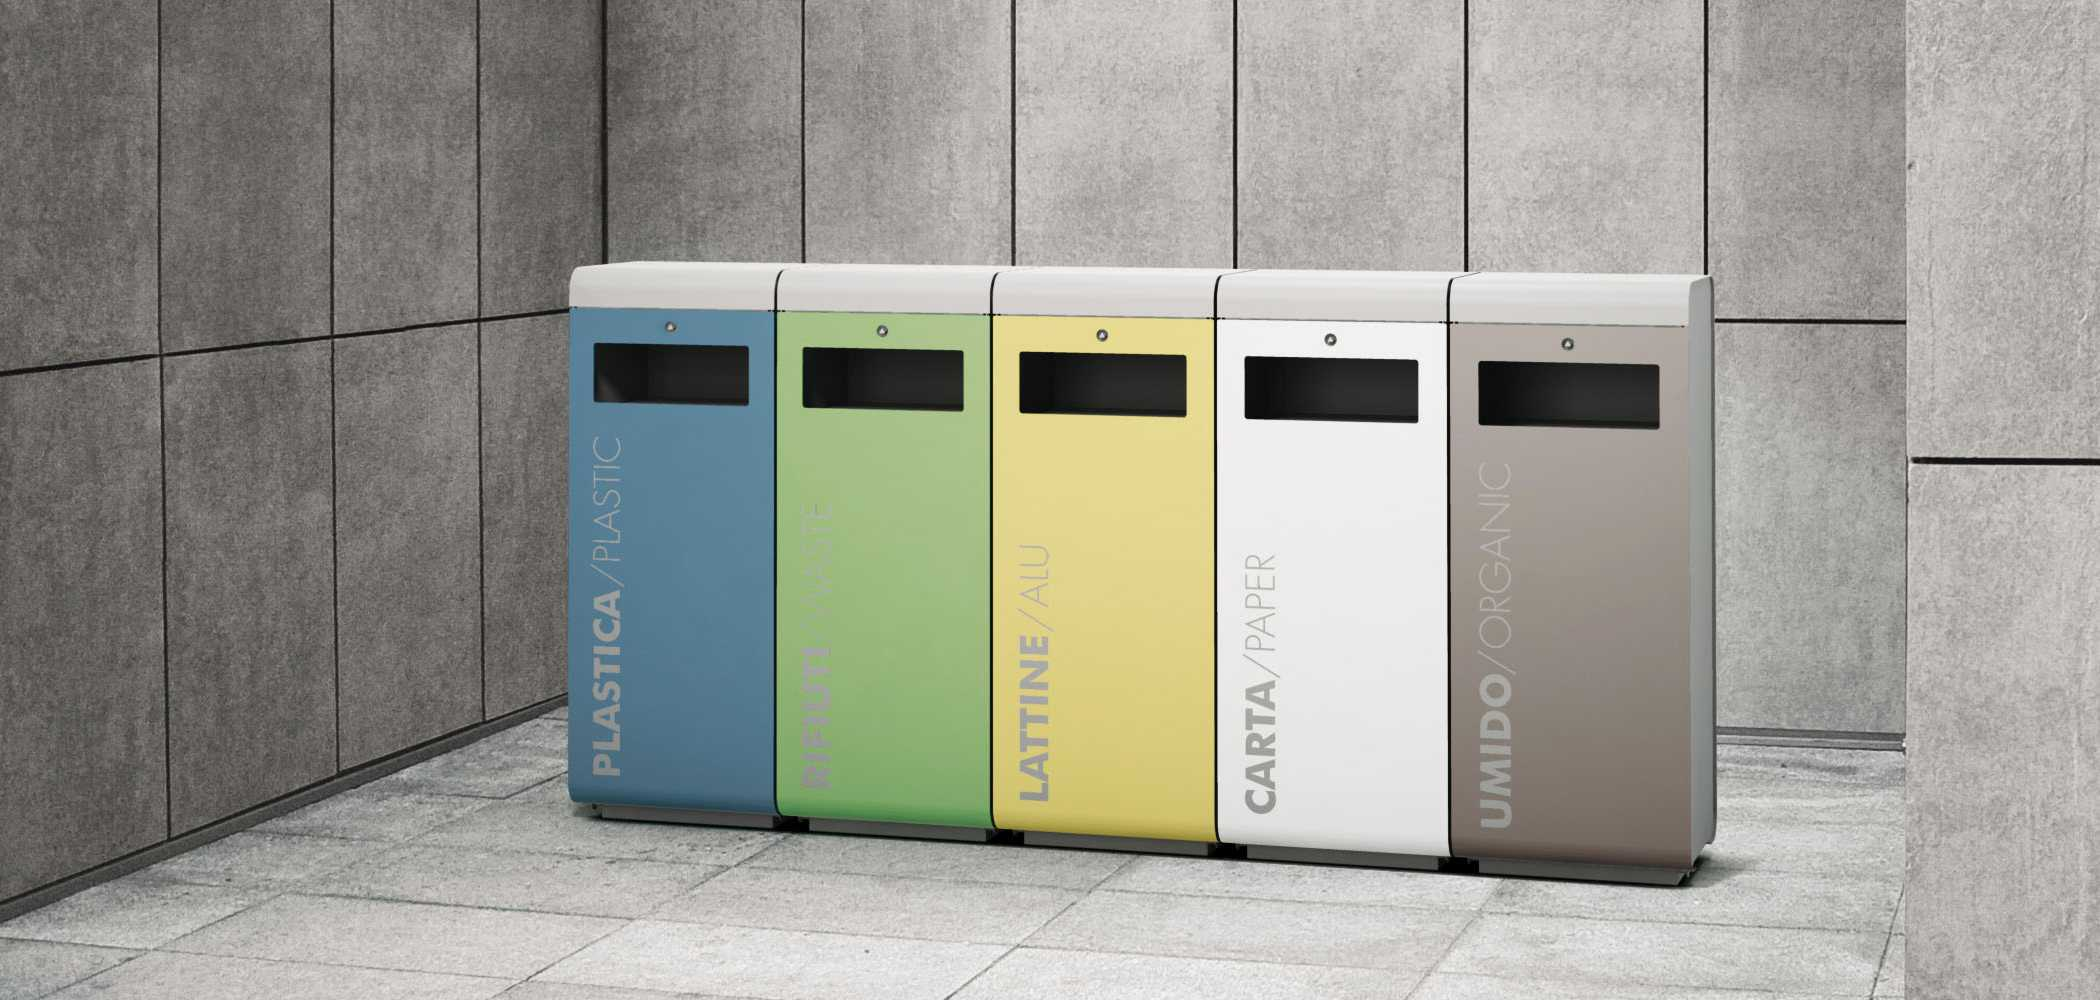 Design Papierkorb Ecoside Litter Bin - Metalco